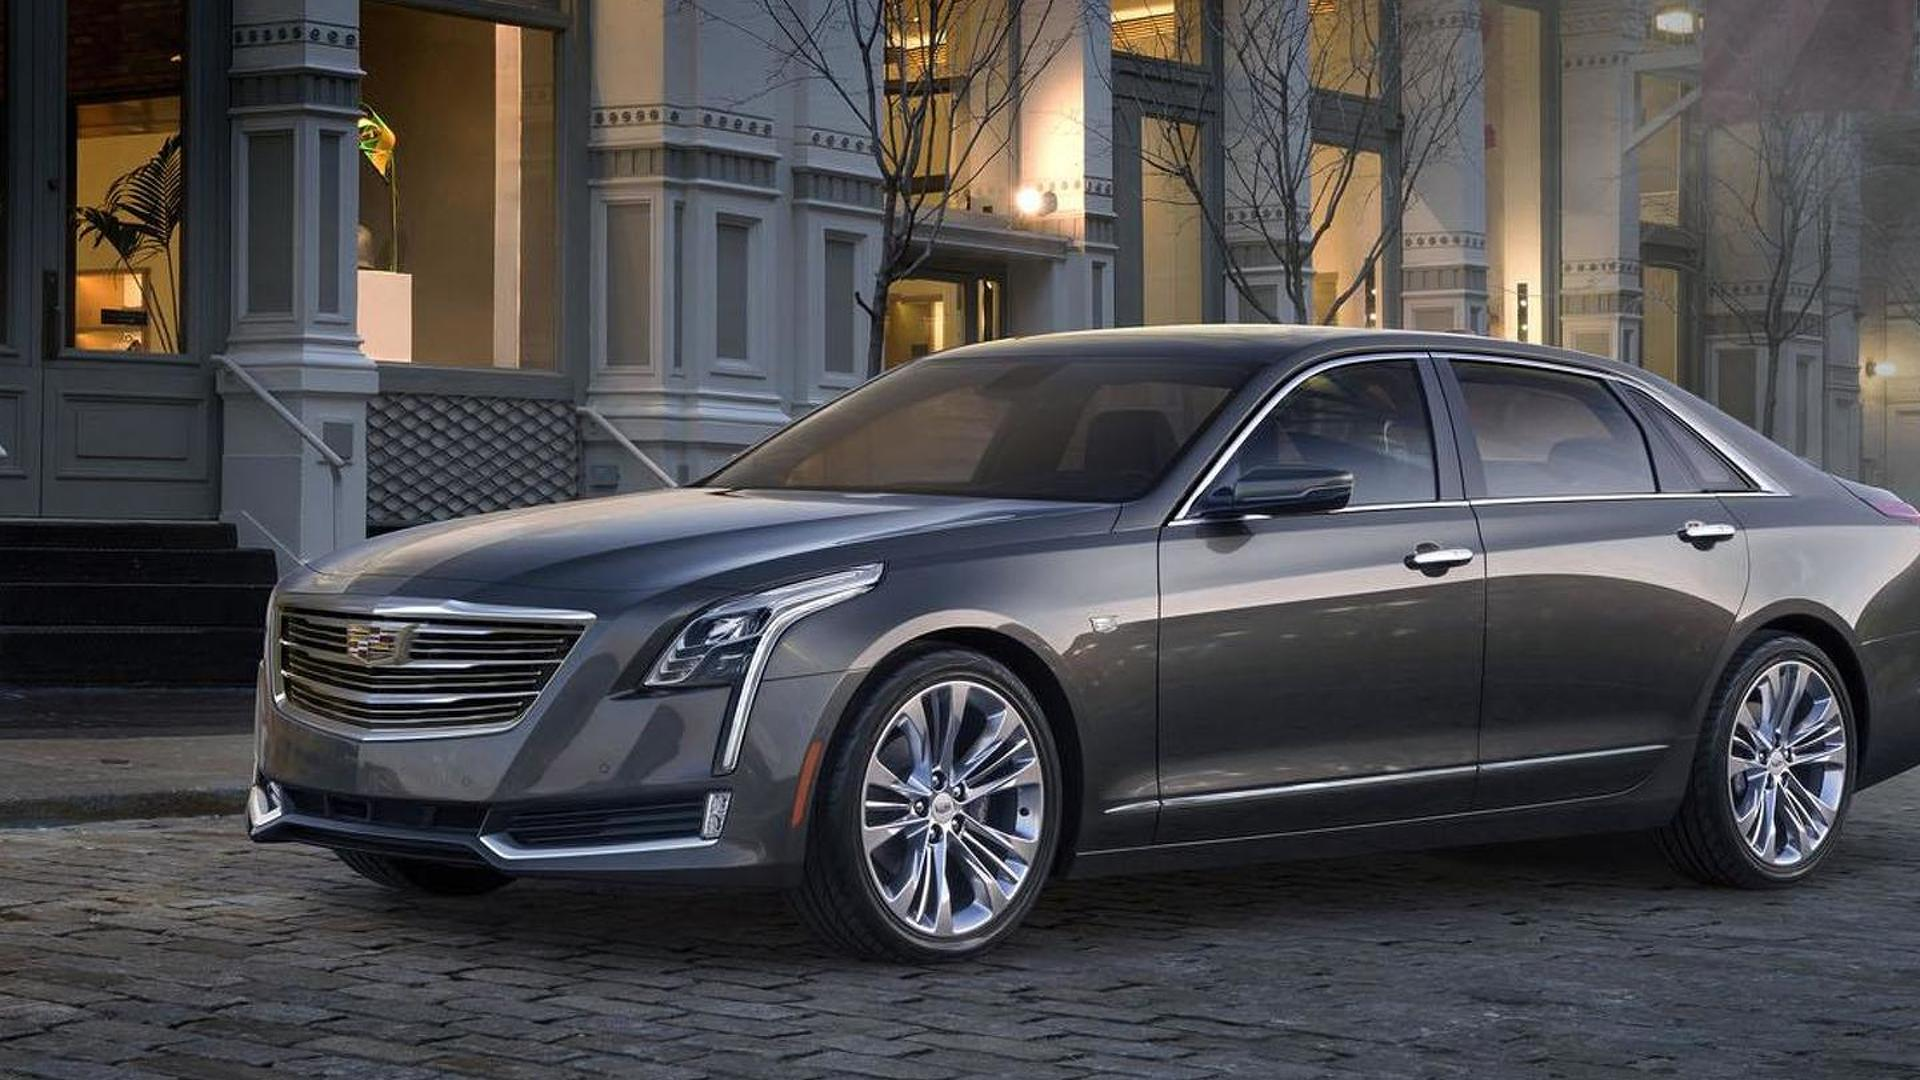 Cadillac president confirms a new V8 engine that is